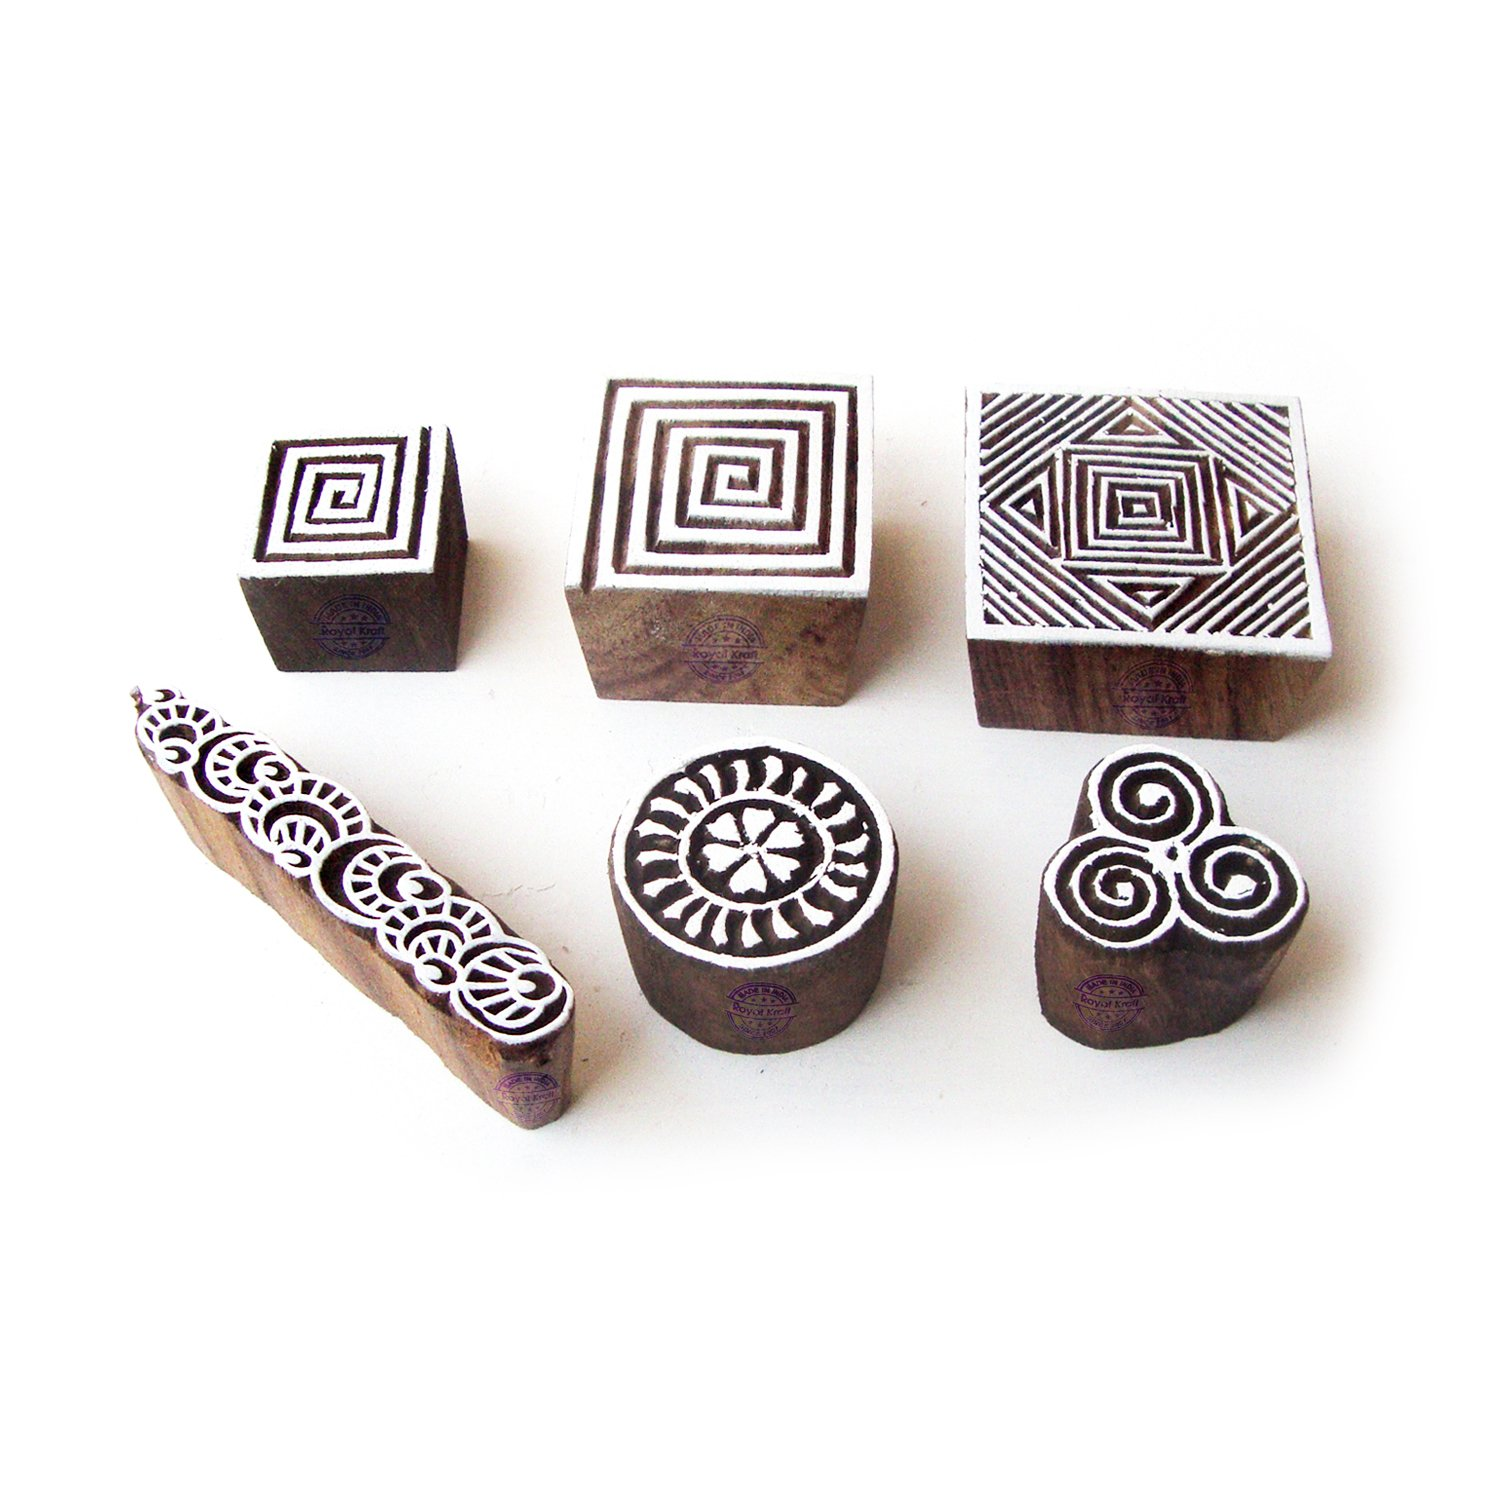 Spiral and Geometric Hand Carved Pattern Wooden Blocks for Printing (Set of 6)